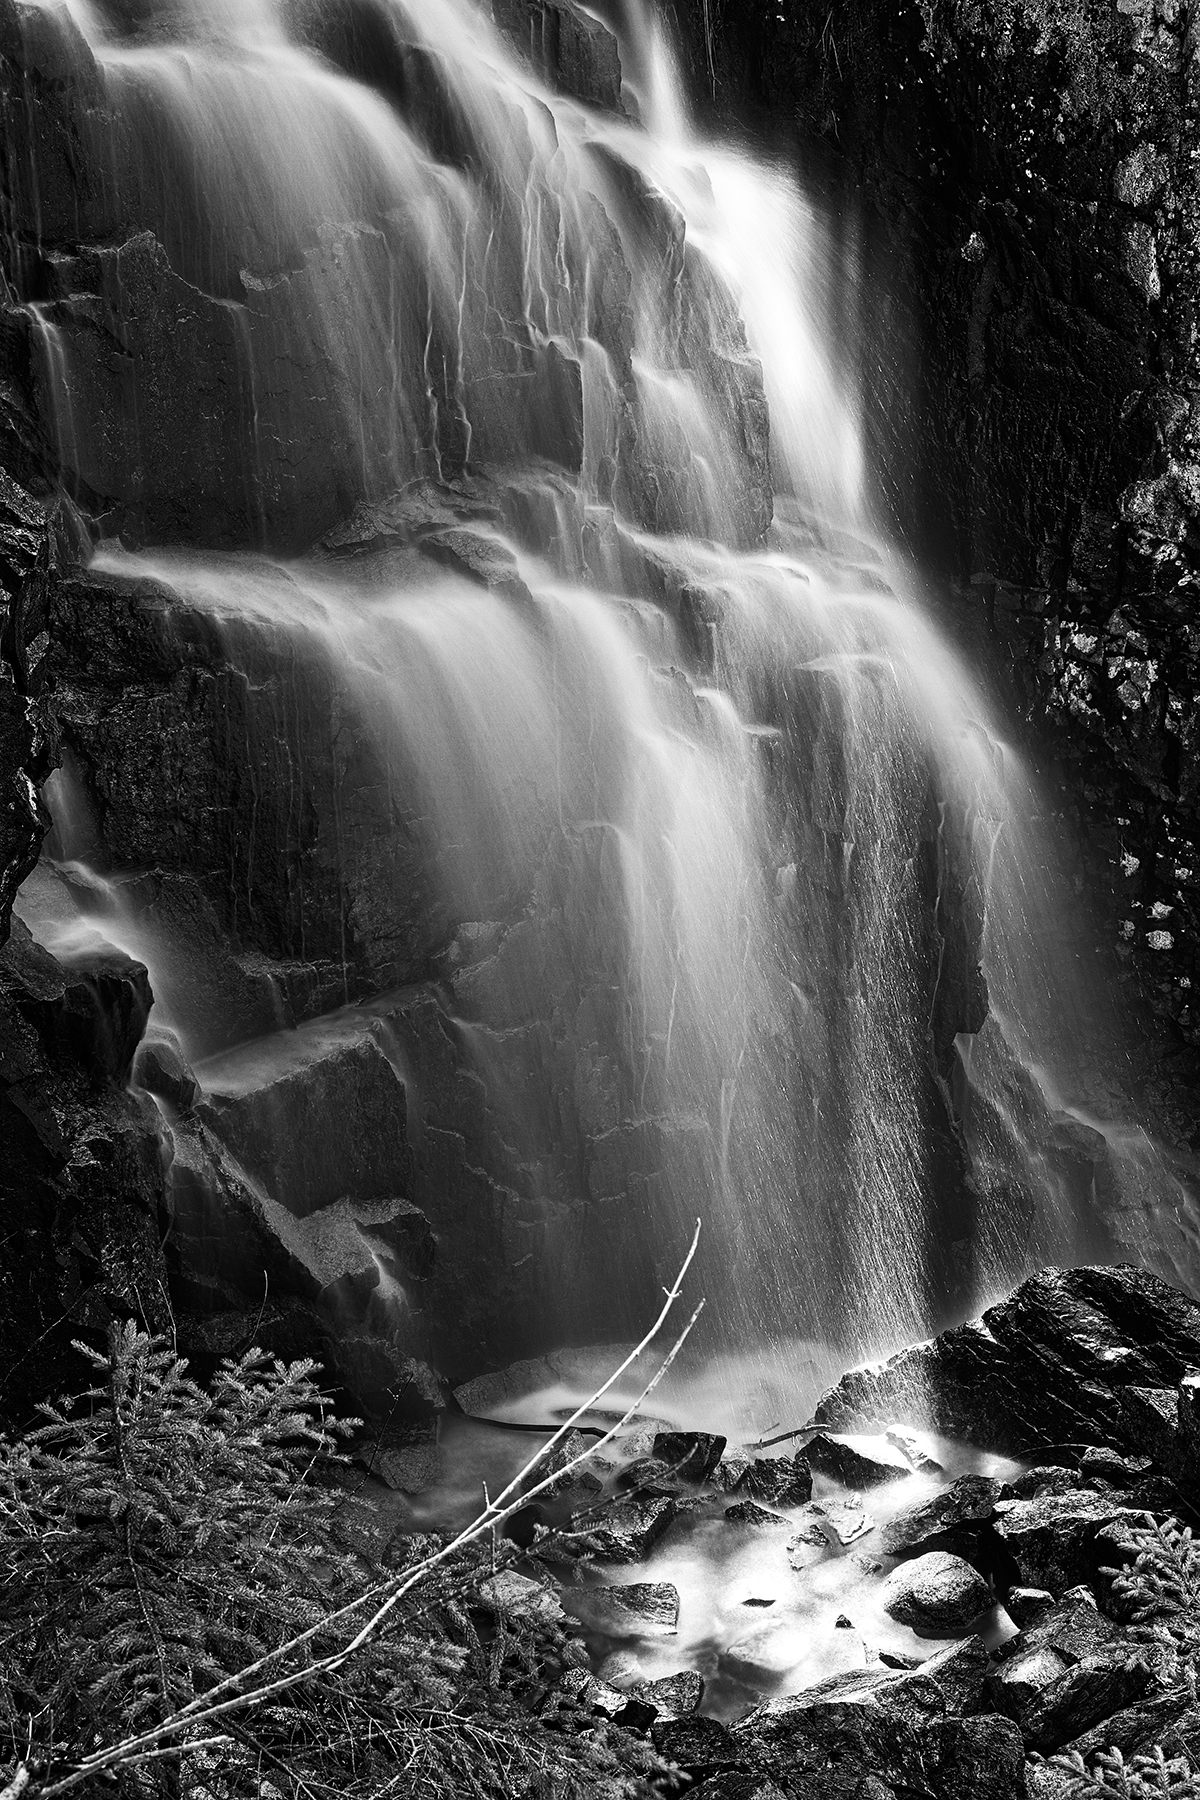 Hadlock sunbeam falls - black & white photo